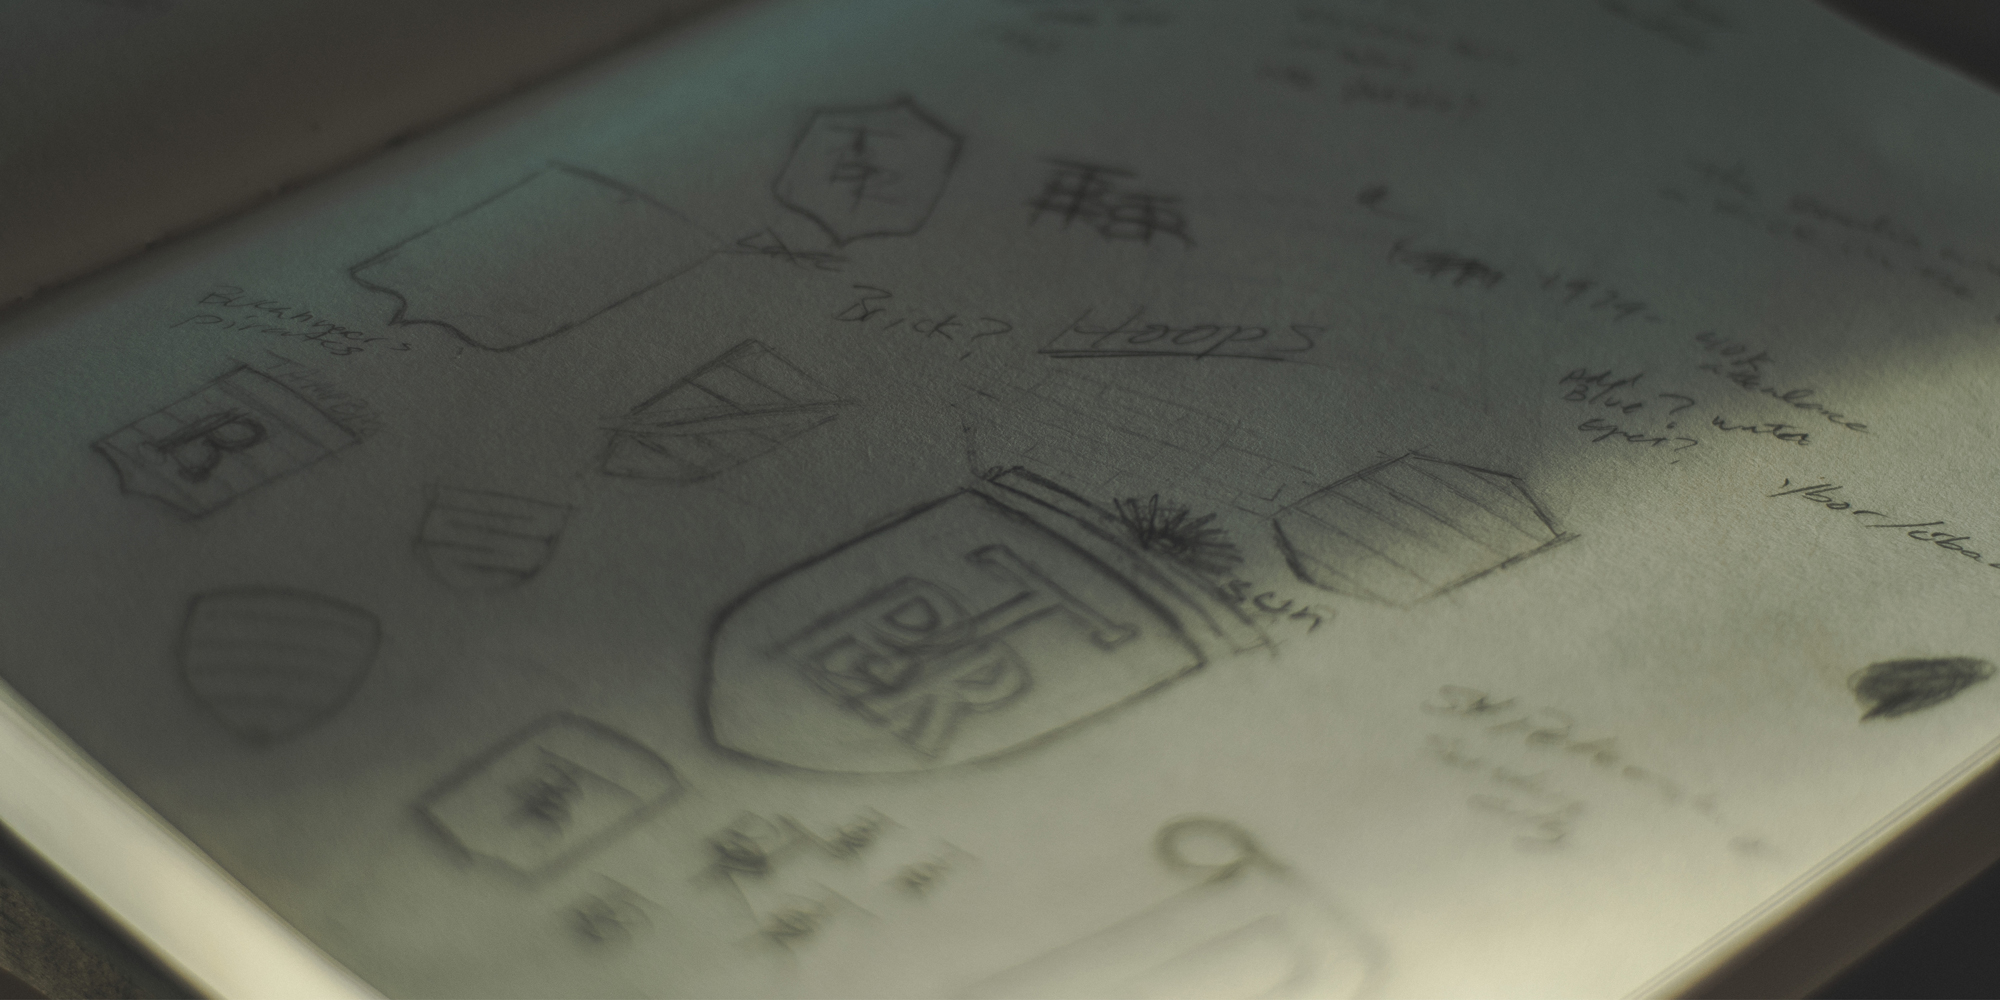 Page out of my sketch-book of my notes and sketches on the new logo